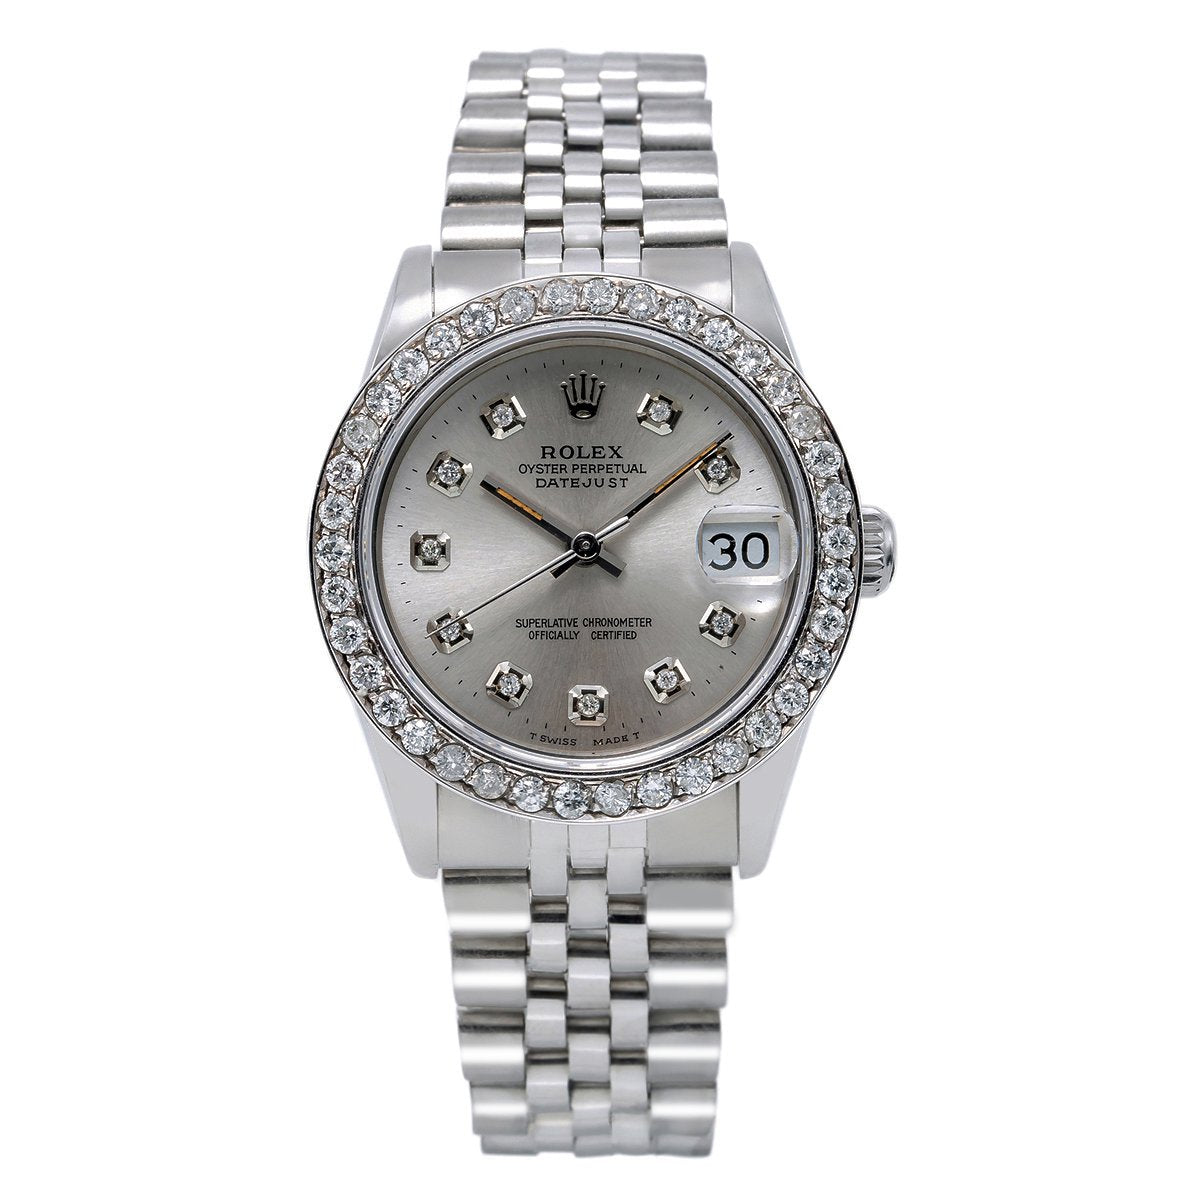 Rolex Datejust Diamond Watch, 68274 31mm, Silver Dial with 1.05CT Diamond Bezel